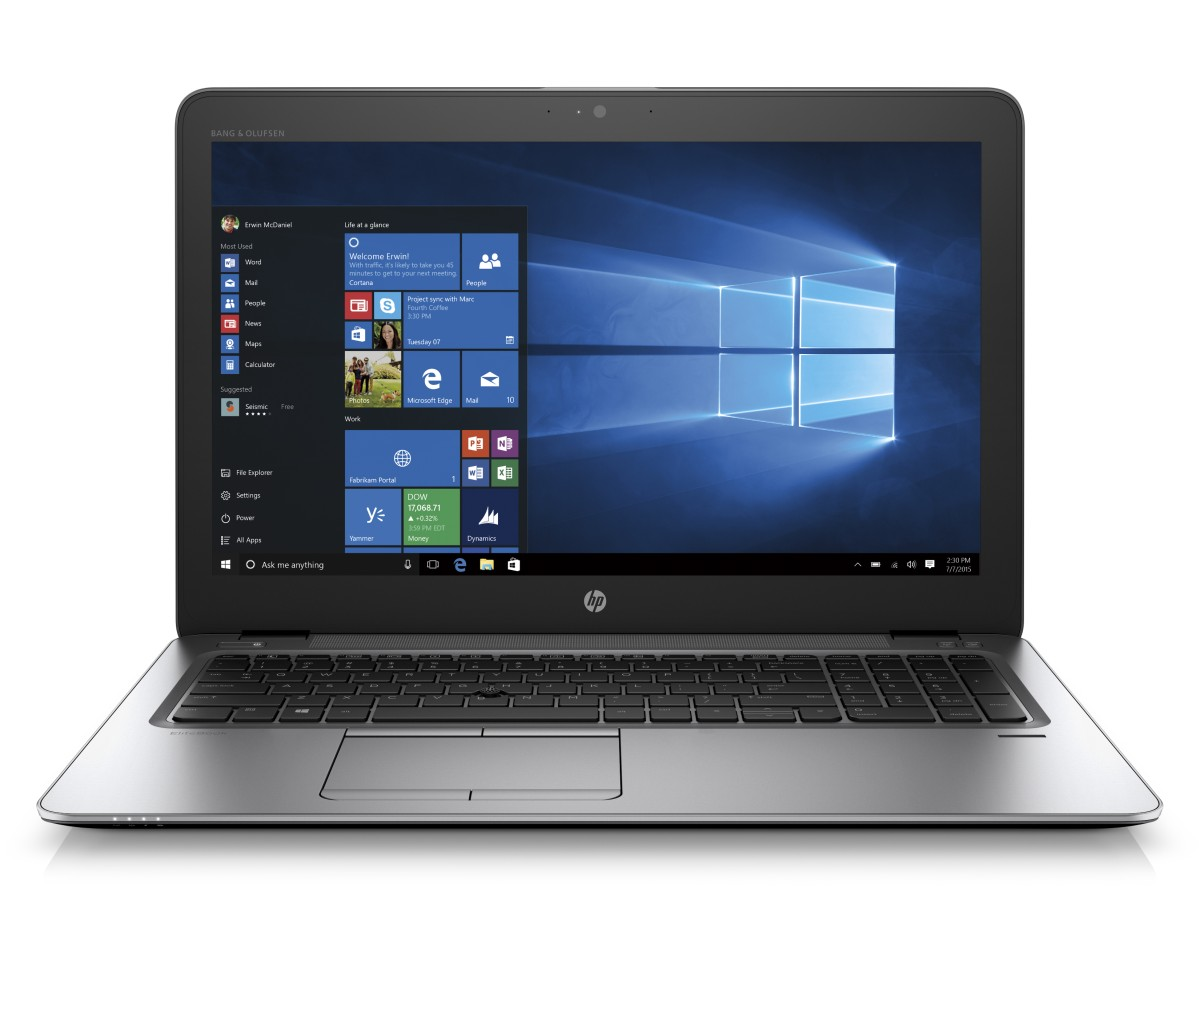 HP EliteBook 850 G4 15.6 FHD/i7-7500U/16GB/512SSD/ATI/4G/WIFI/BT/MCR/F